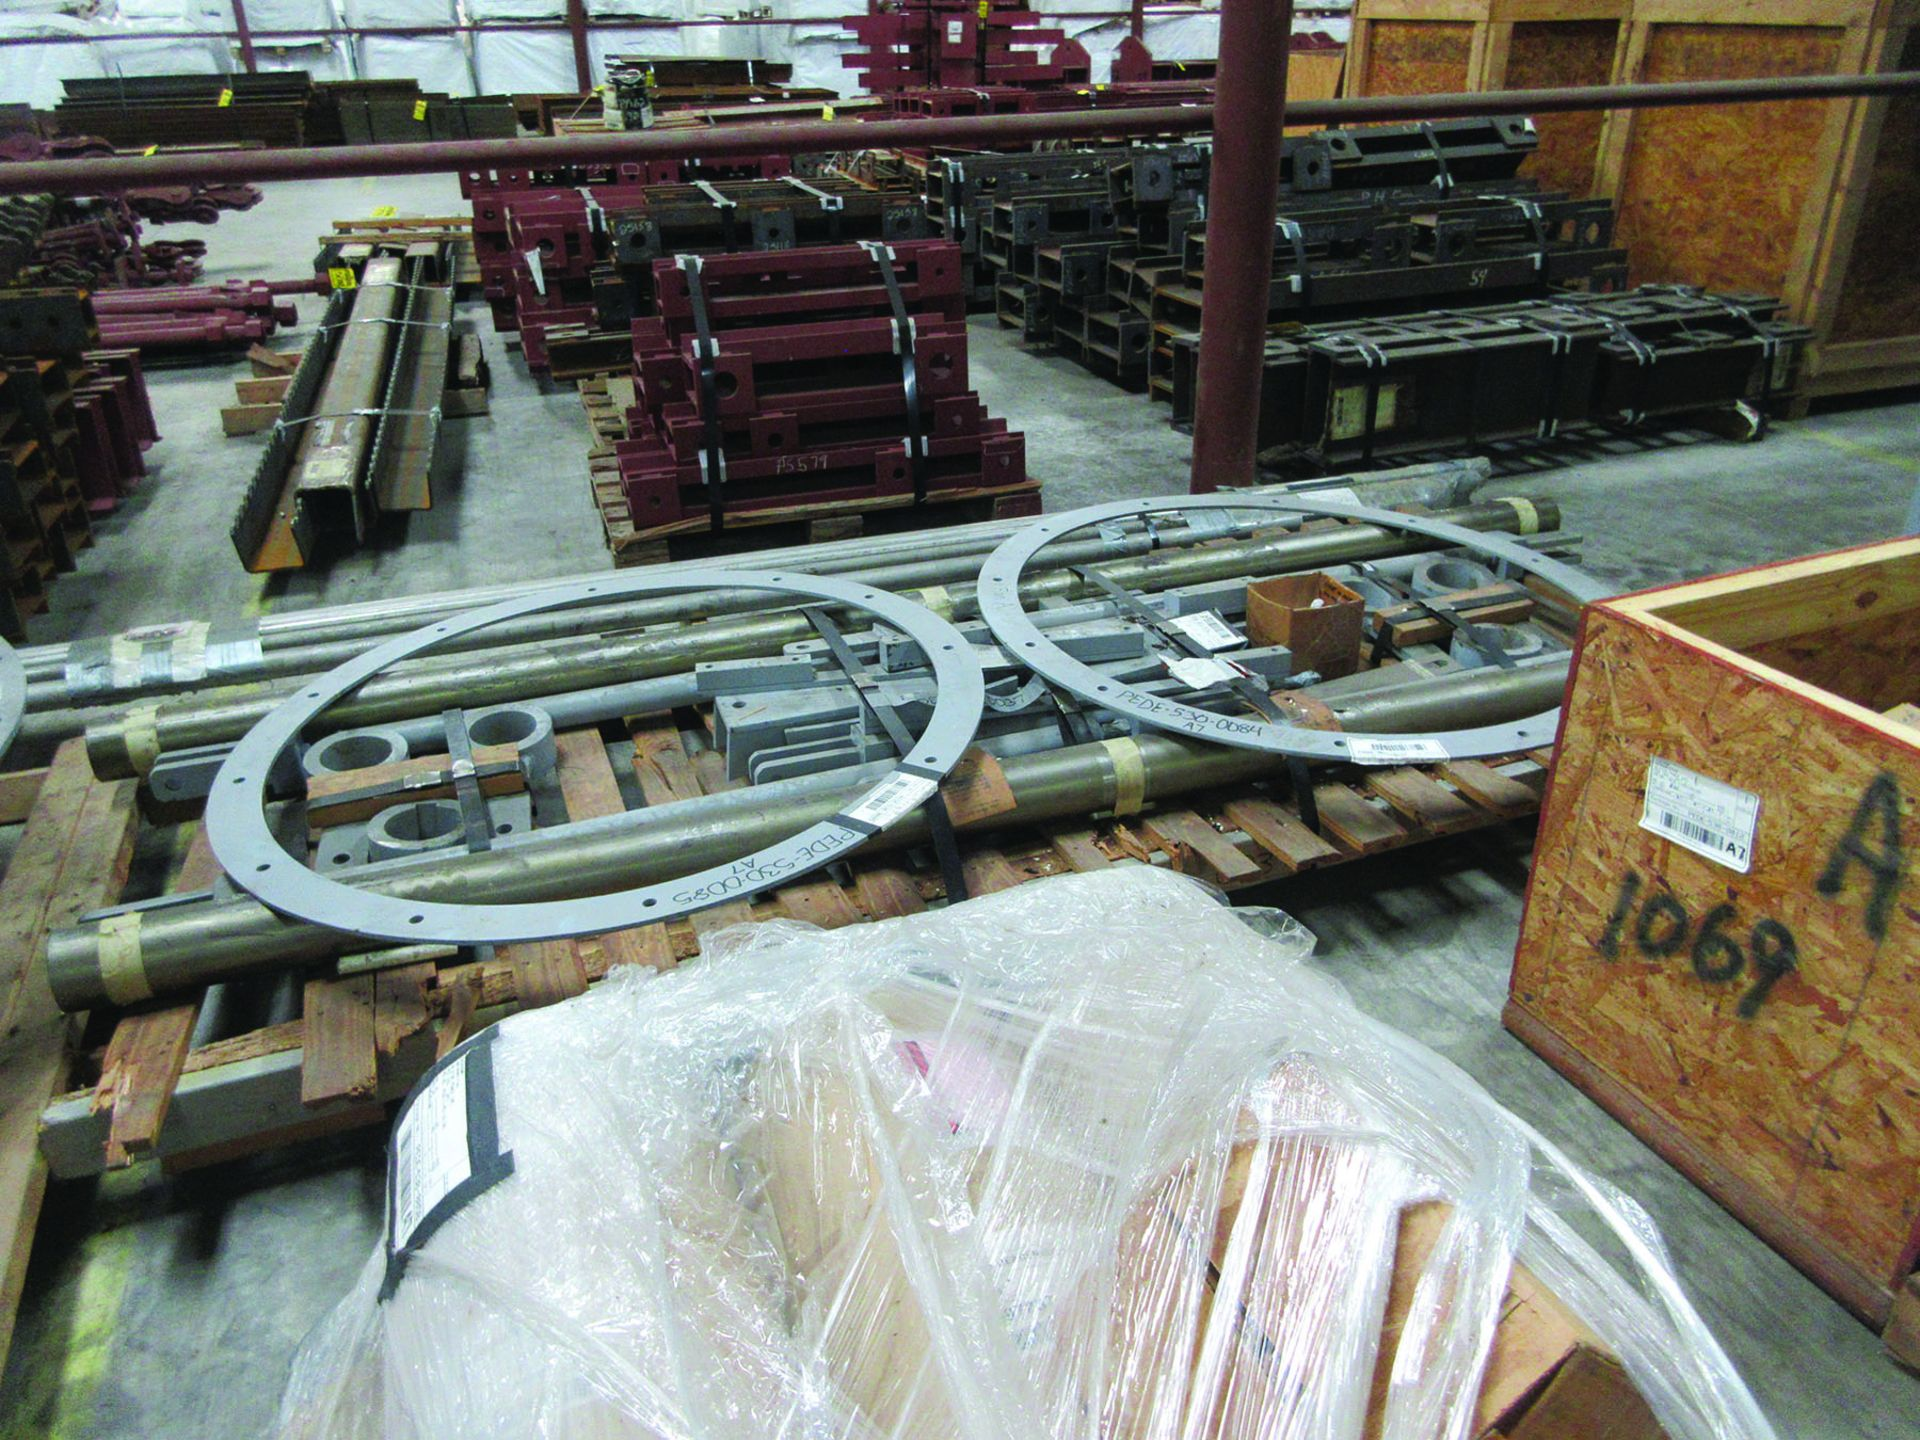 LOT OF ASSORTED PARTS: BARSETS, SHAFT COUPLINGS, COUPLING GUARDS, AND MORE, GRID A7 - Image 13 of 16